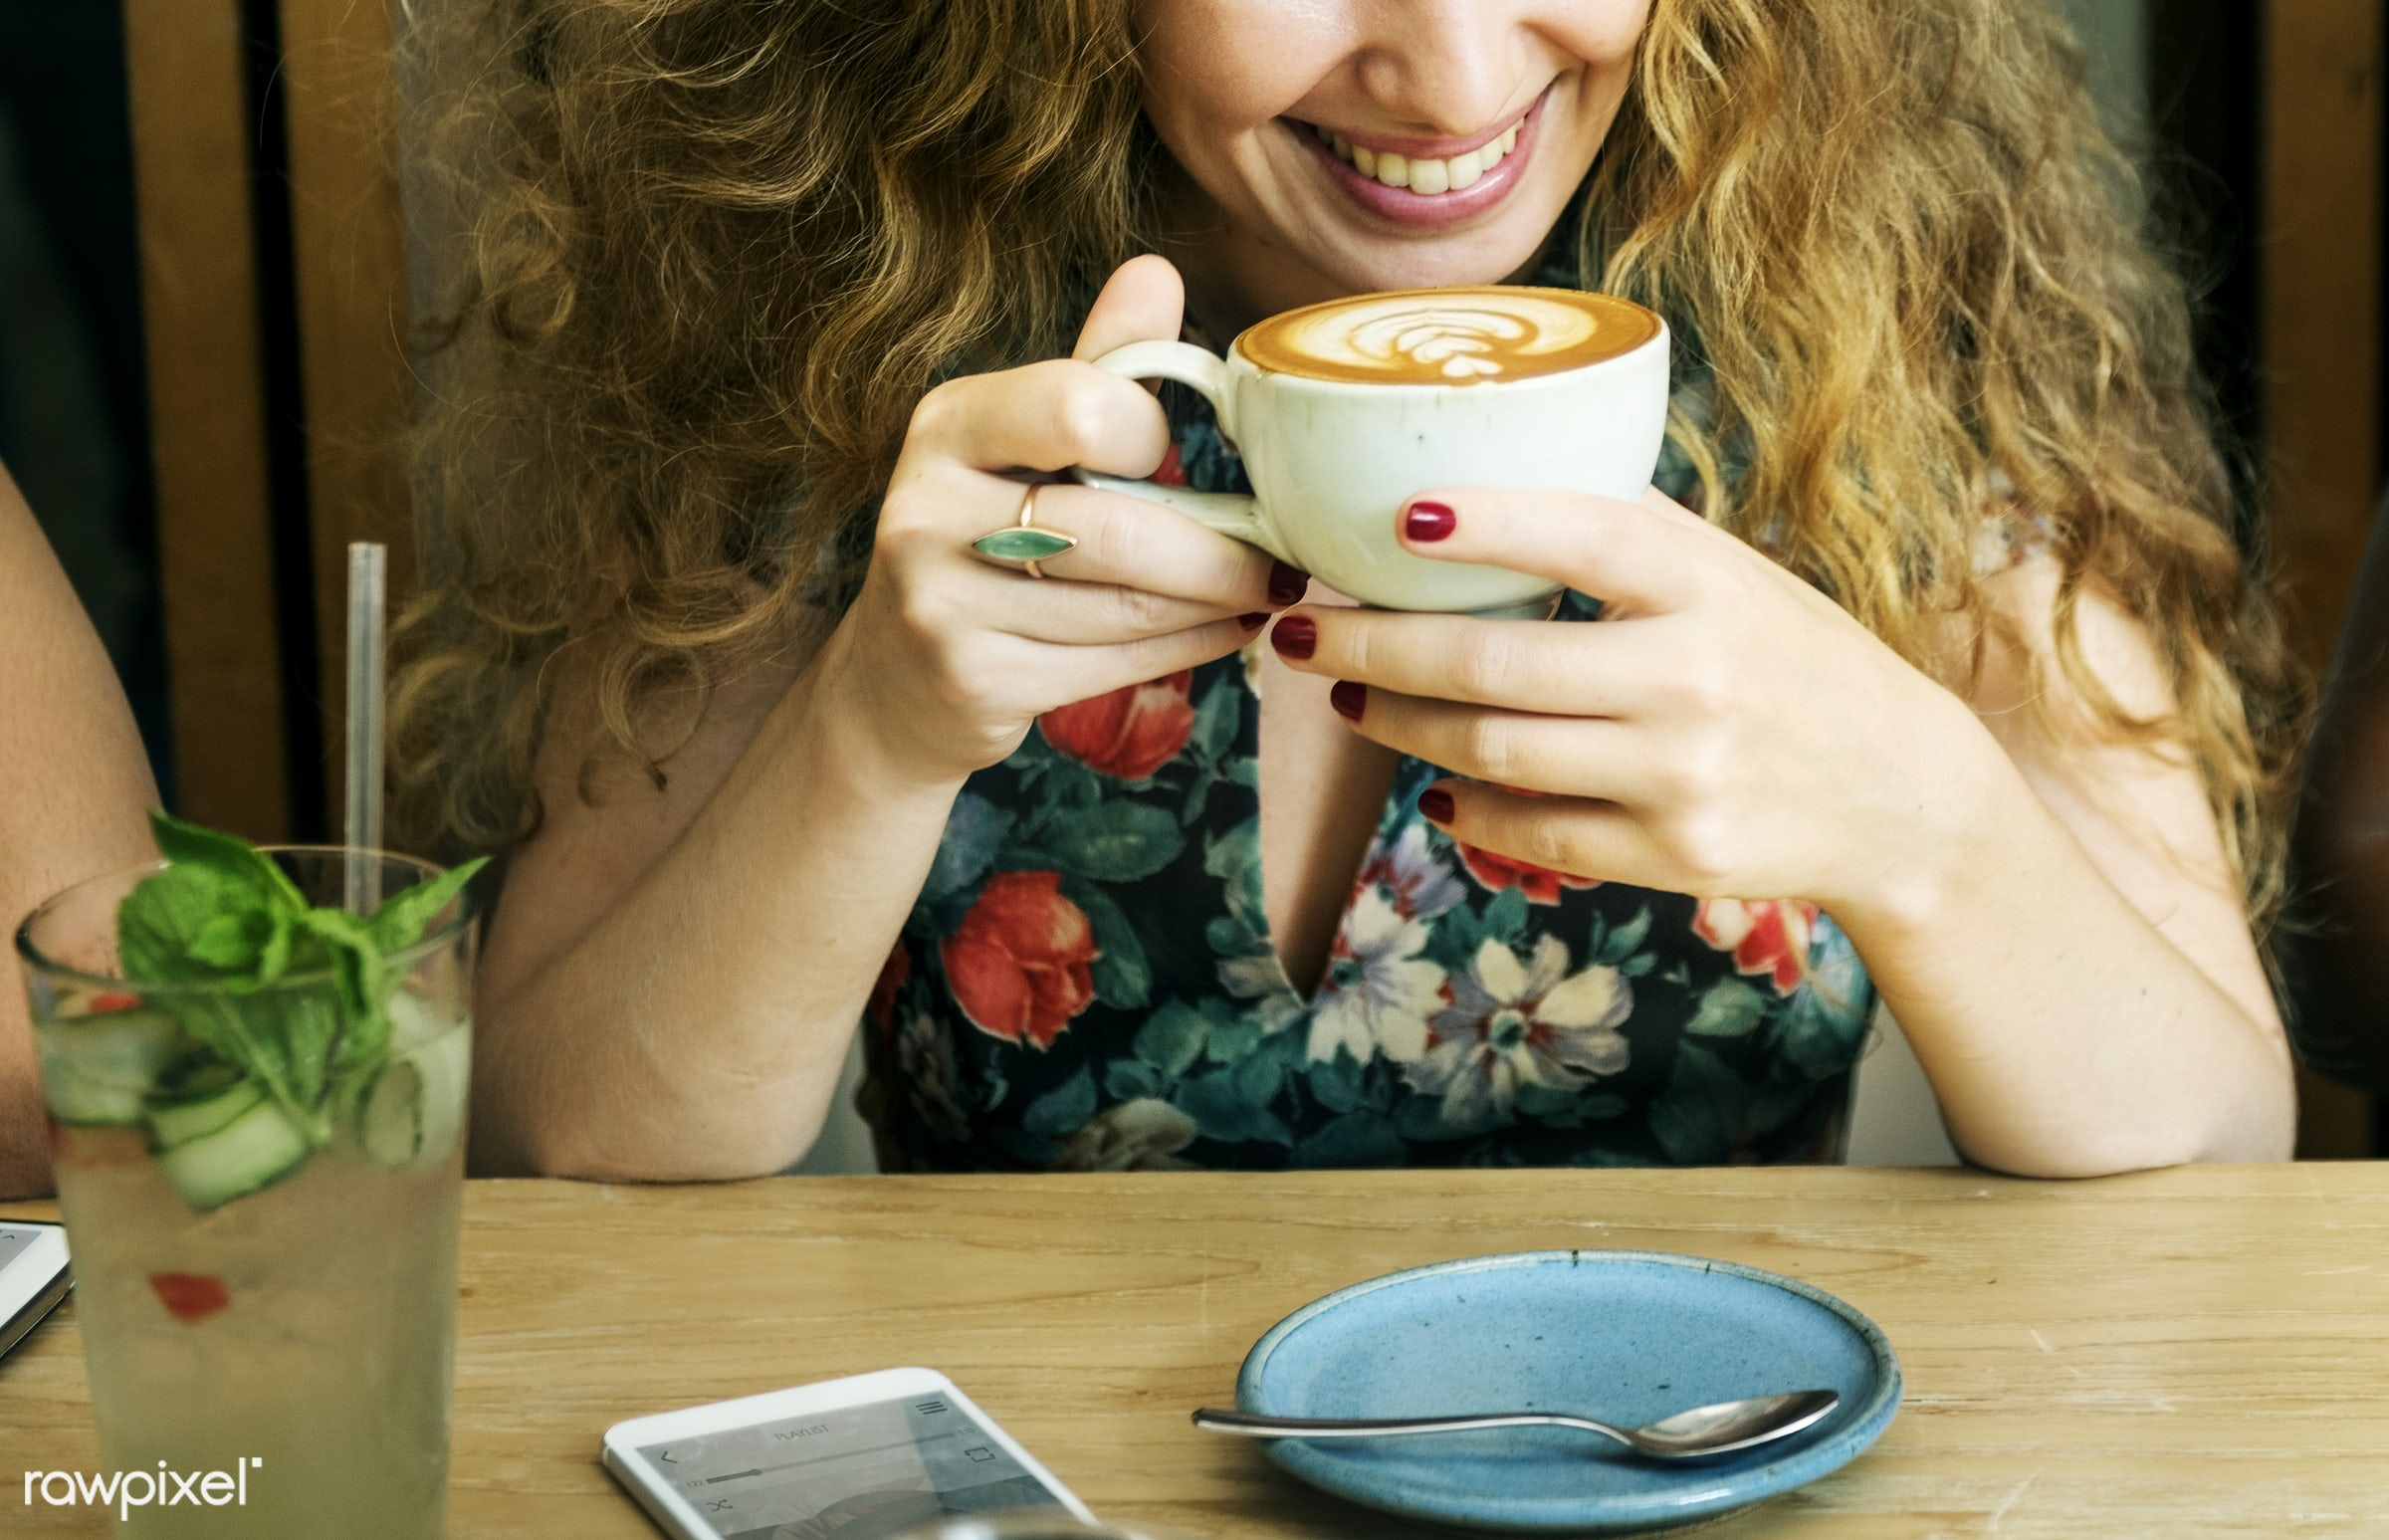 aroma, art, beautiful, beauty, beverage, breakfast, brewed, brown, brunette, cafe, cafe shop, cappuccino, casual, coffee,...